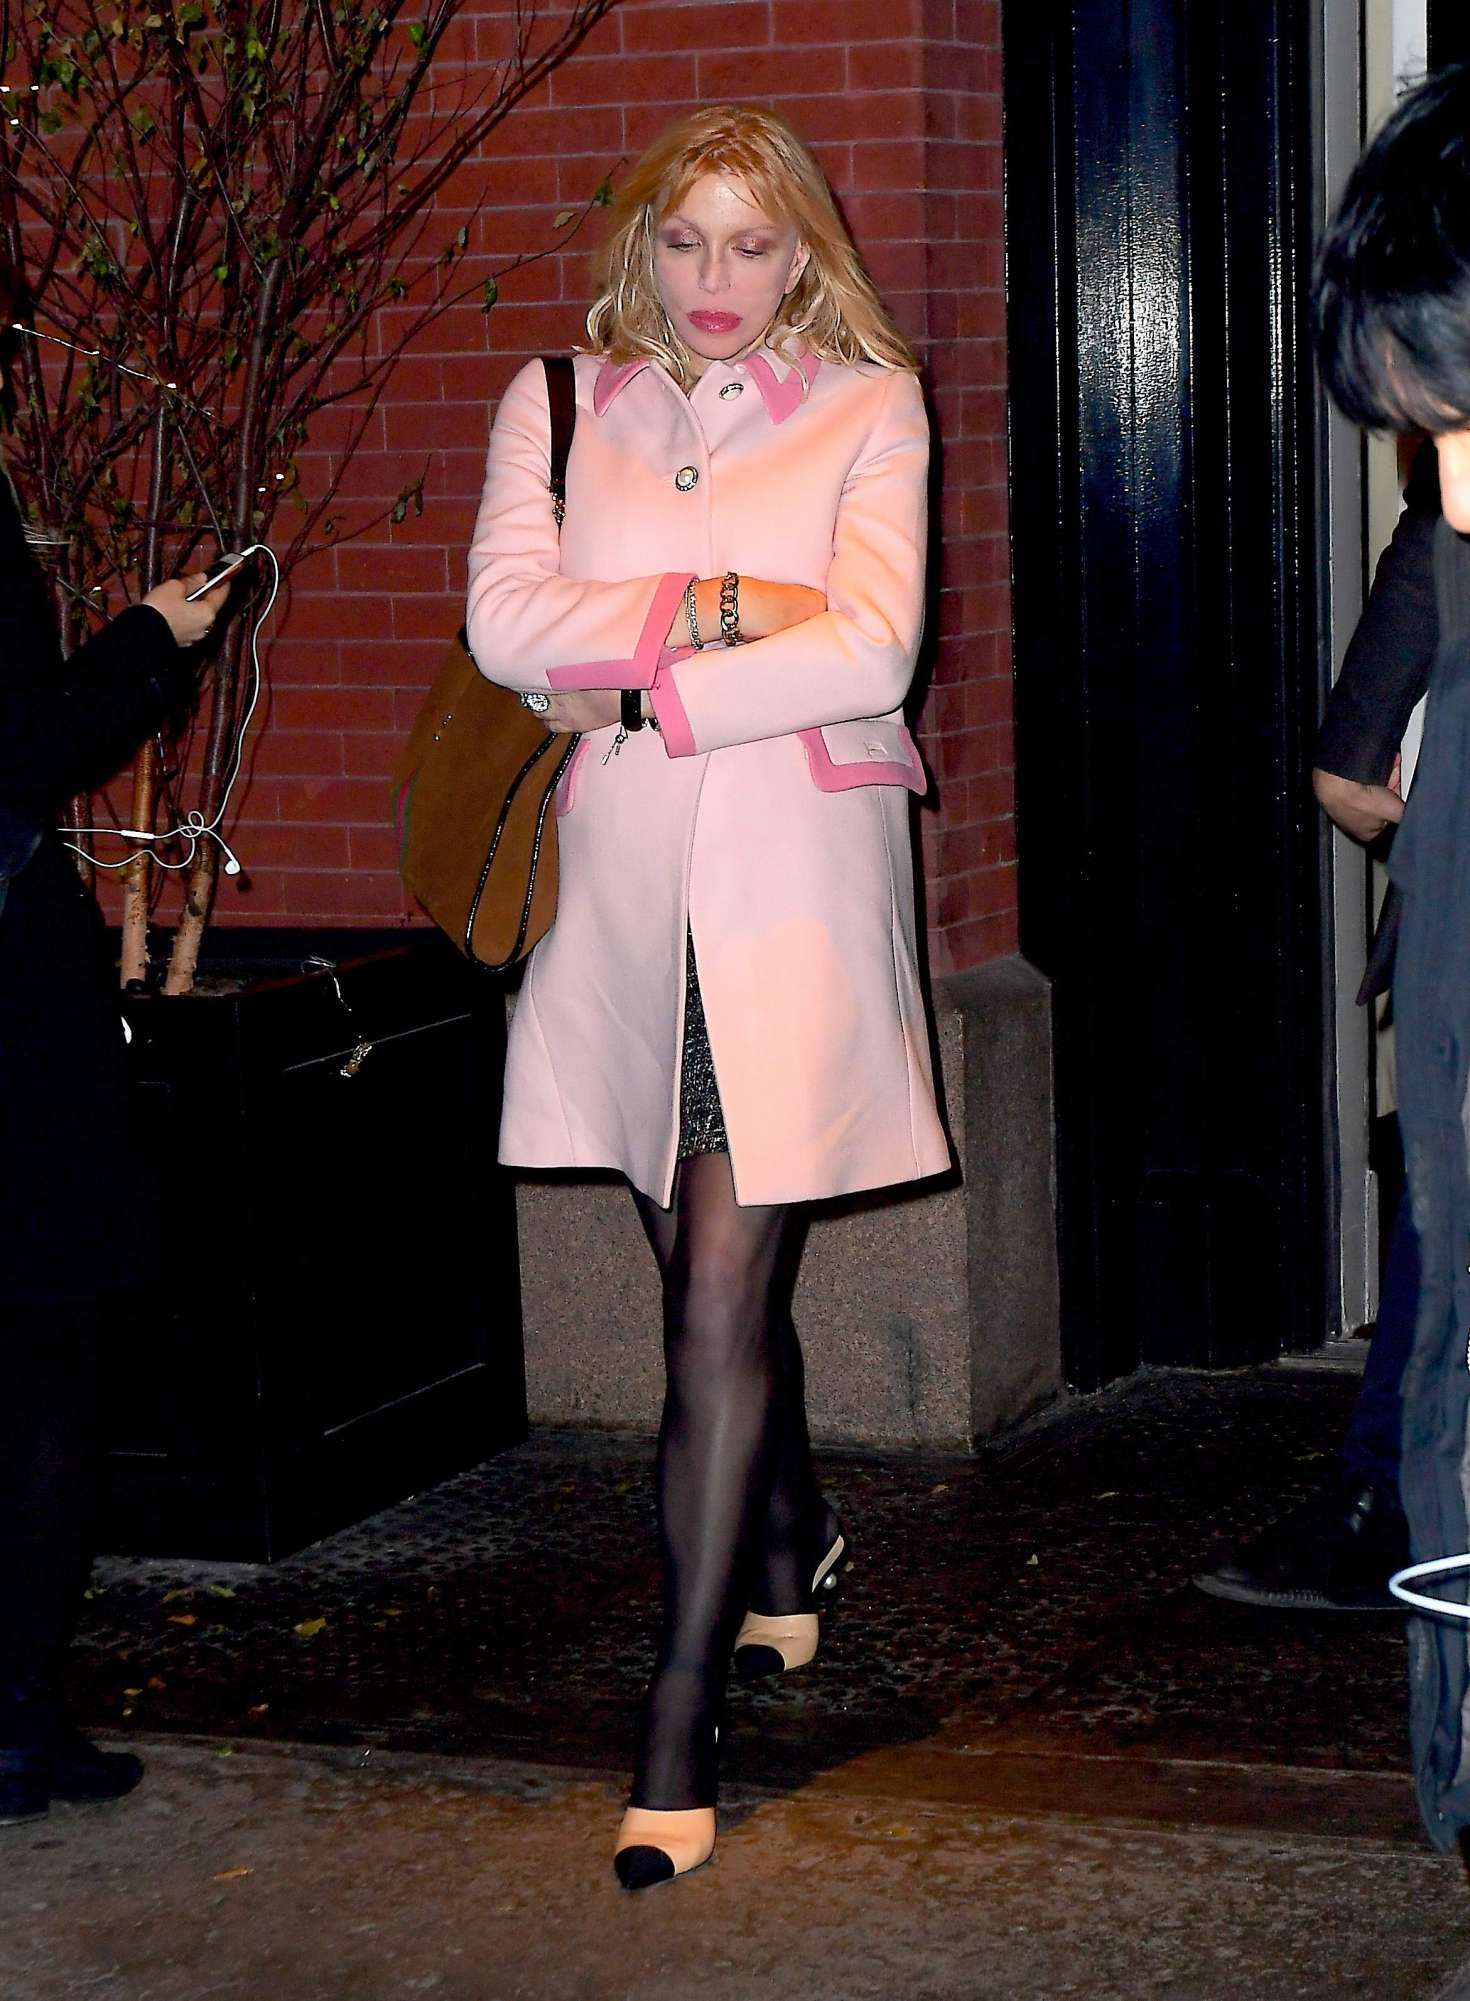 Courtney Love 2018 : Courtney Love: Arrives at the Mercer Kitchen -10